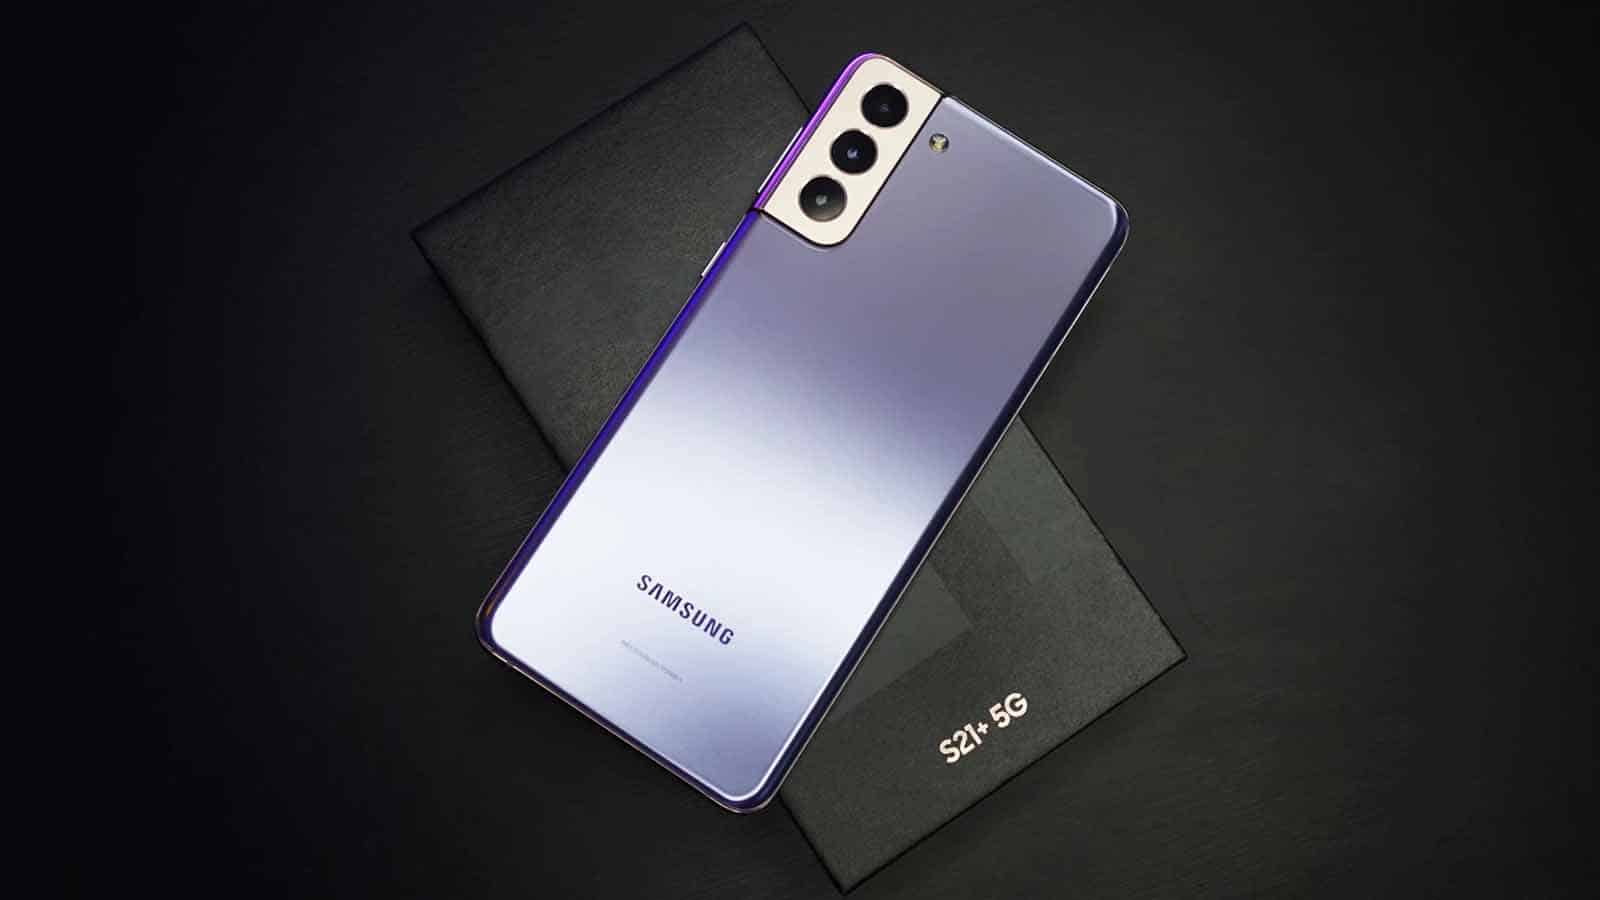 samsung phone on table with android